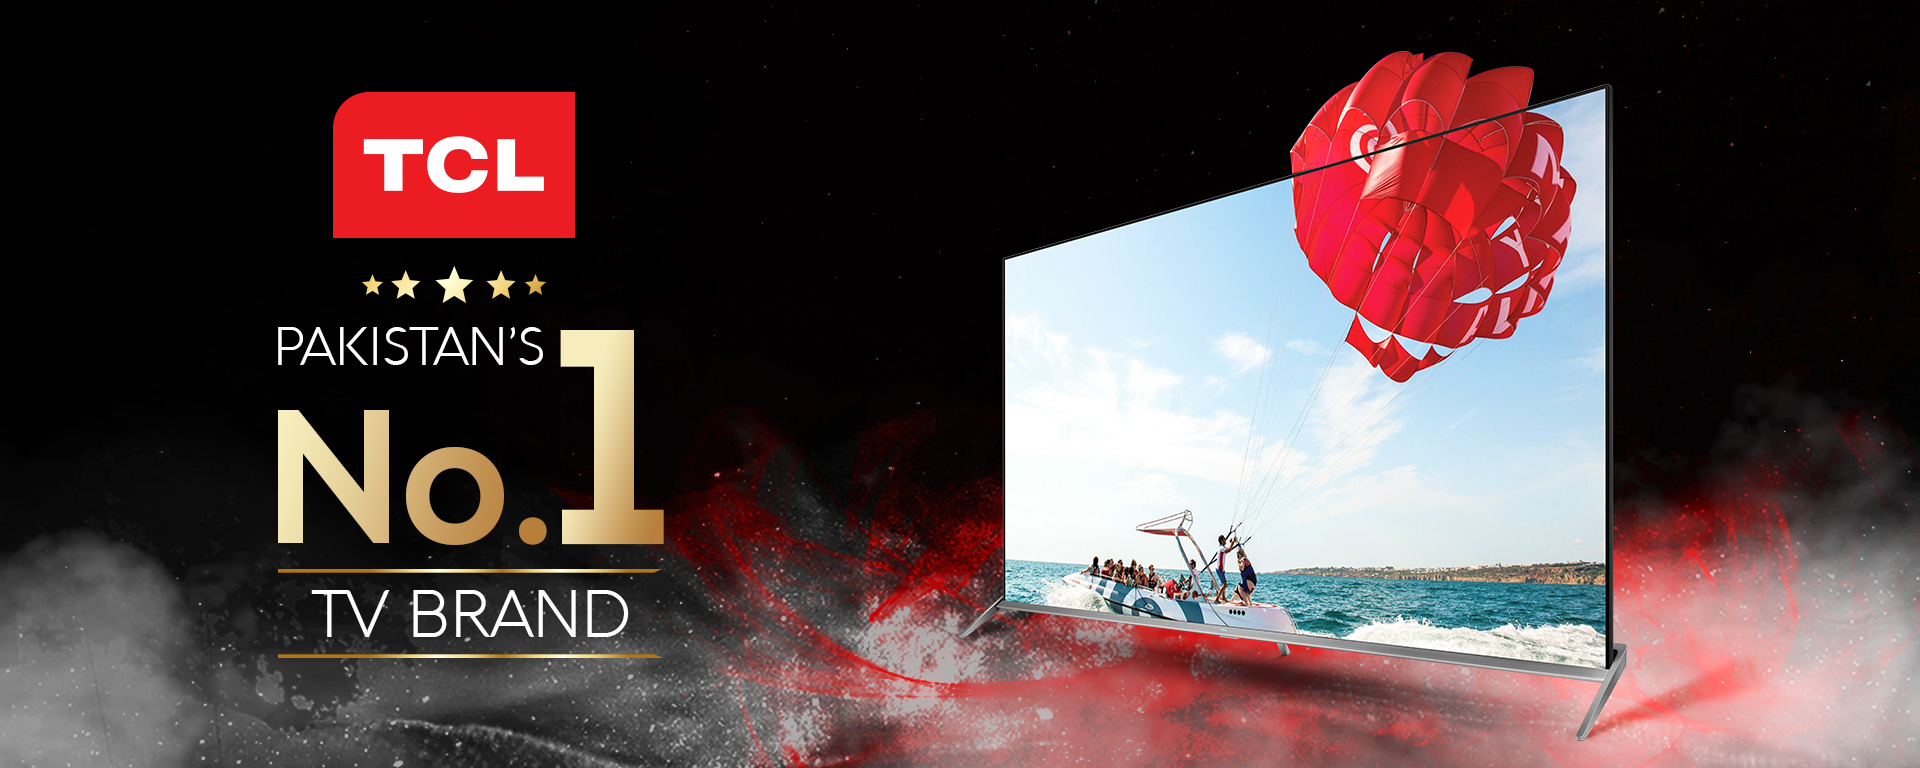 TCL Electronics becomes No. 1 TV Brand in Pakistan